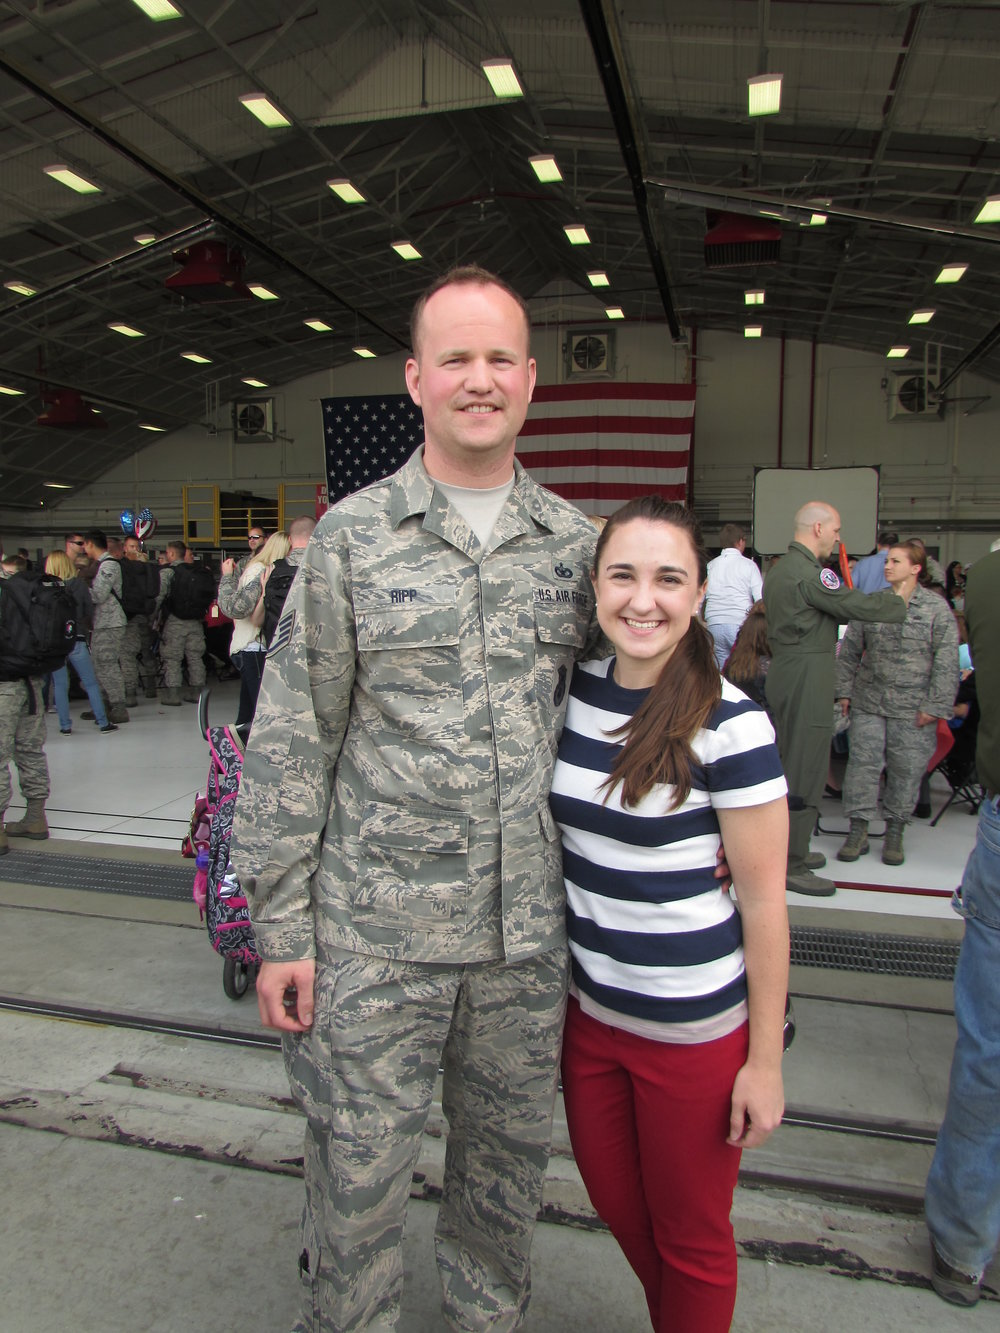 Jenna and now husband, Brandon, at Truax Air Force base in Madison, when they welcomed his brother home from a deployment